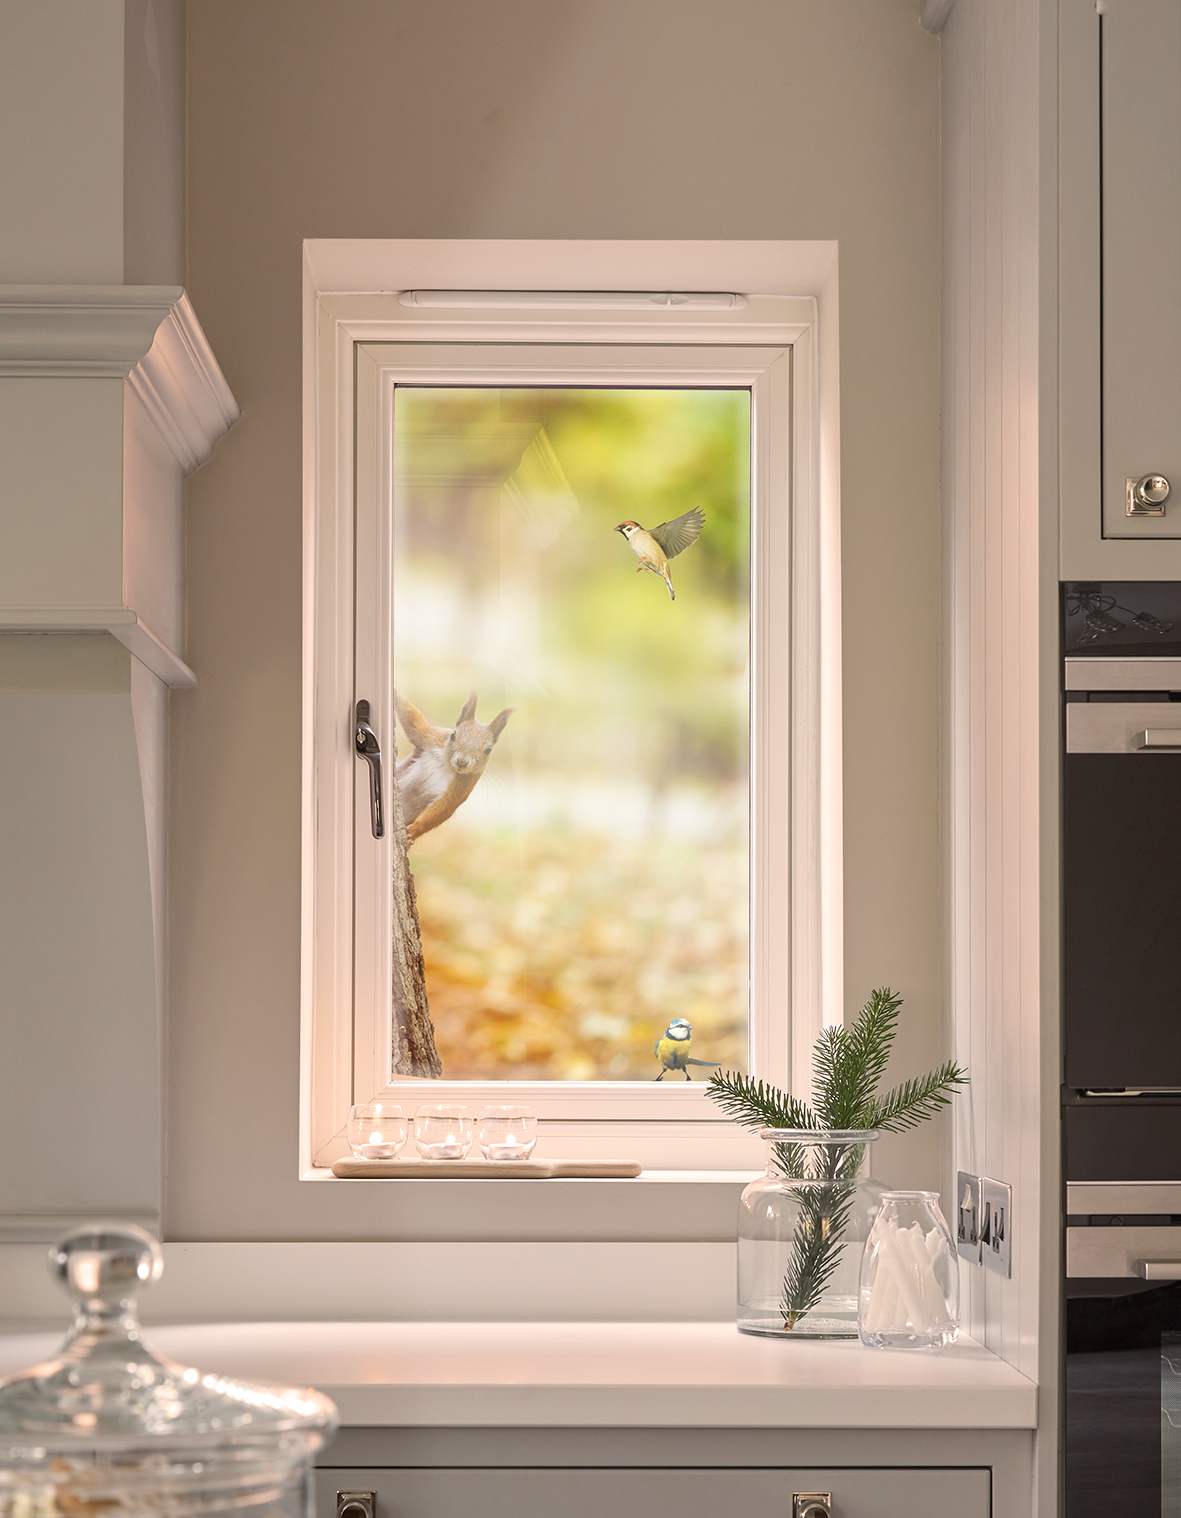 Replacing windows with new energy efficient ones from Sidey Trade will eliminate cold spots, and help save your customers money on heating bills.https://t.co/sGhIO0plCe https://t.co/Yl8zWFs8pe